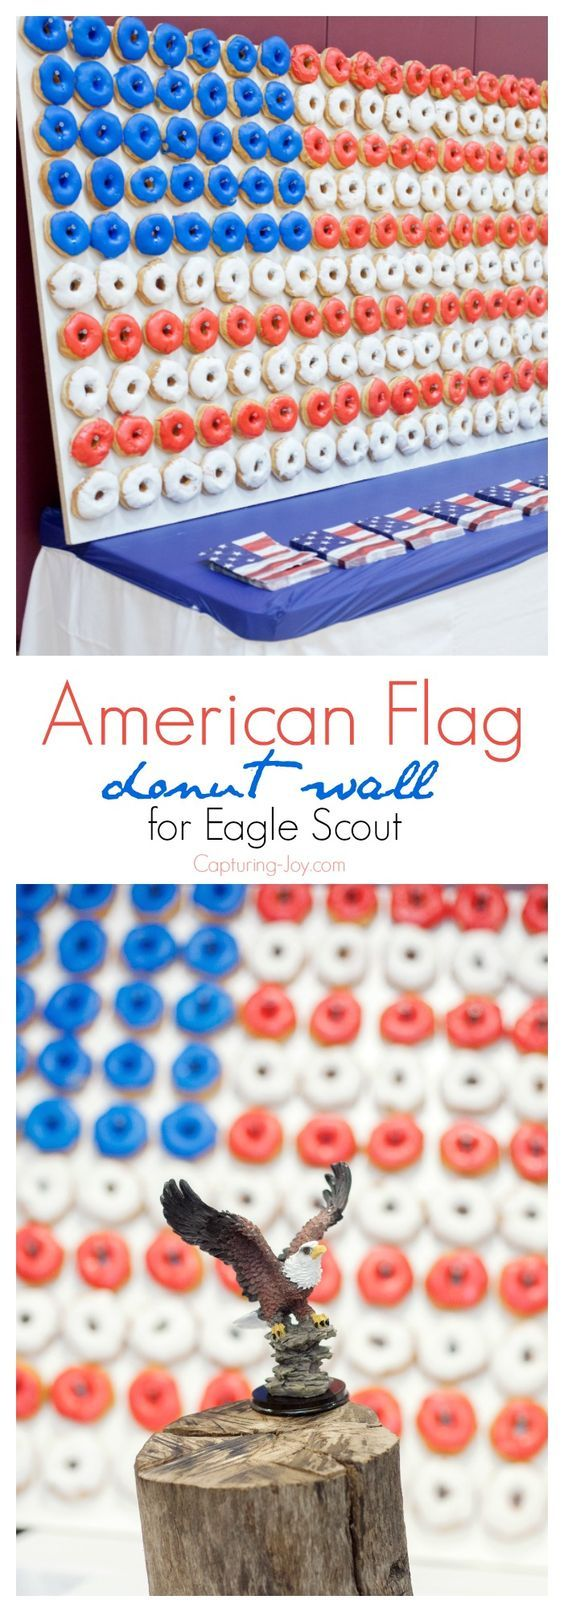 American Flag Donut Wall for Eagle Scout